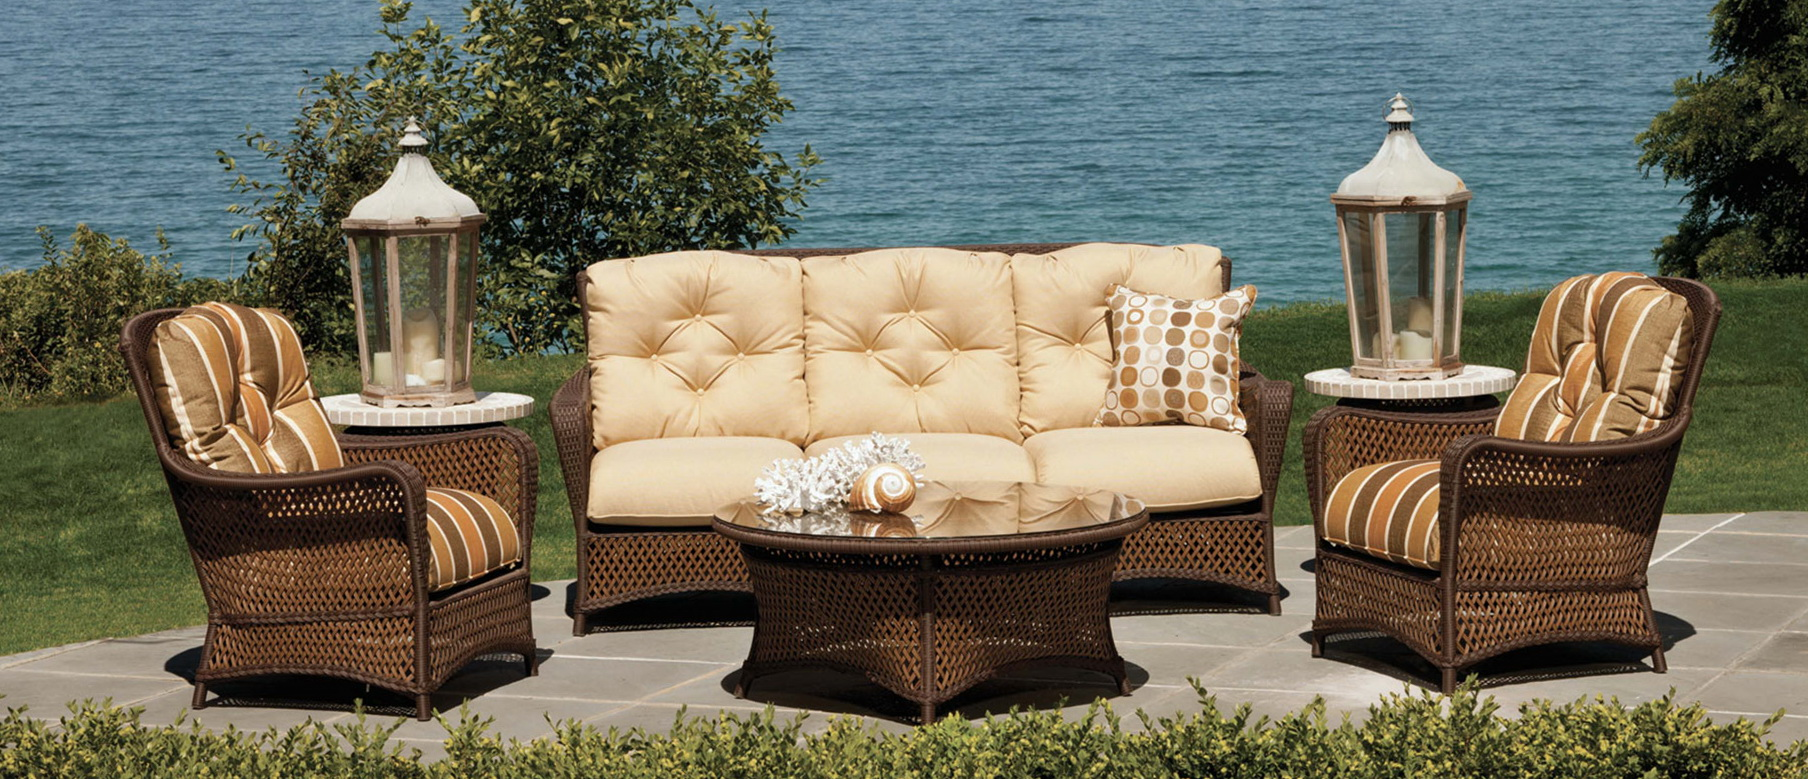 Outdoor Furniture Replacement Cushions Adelaide Home